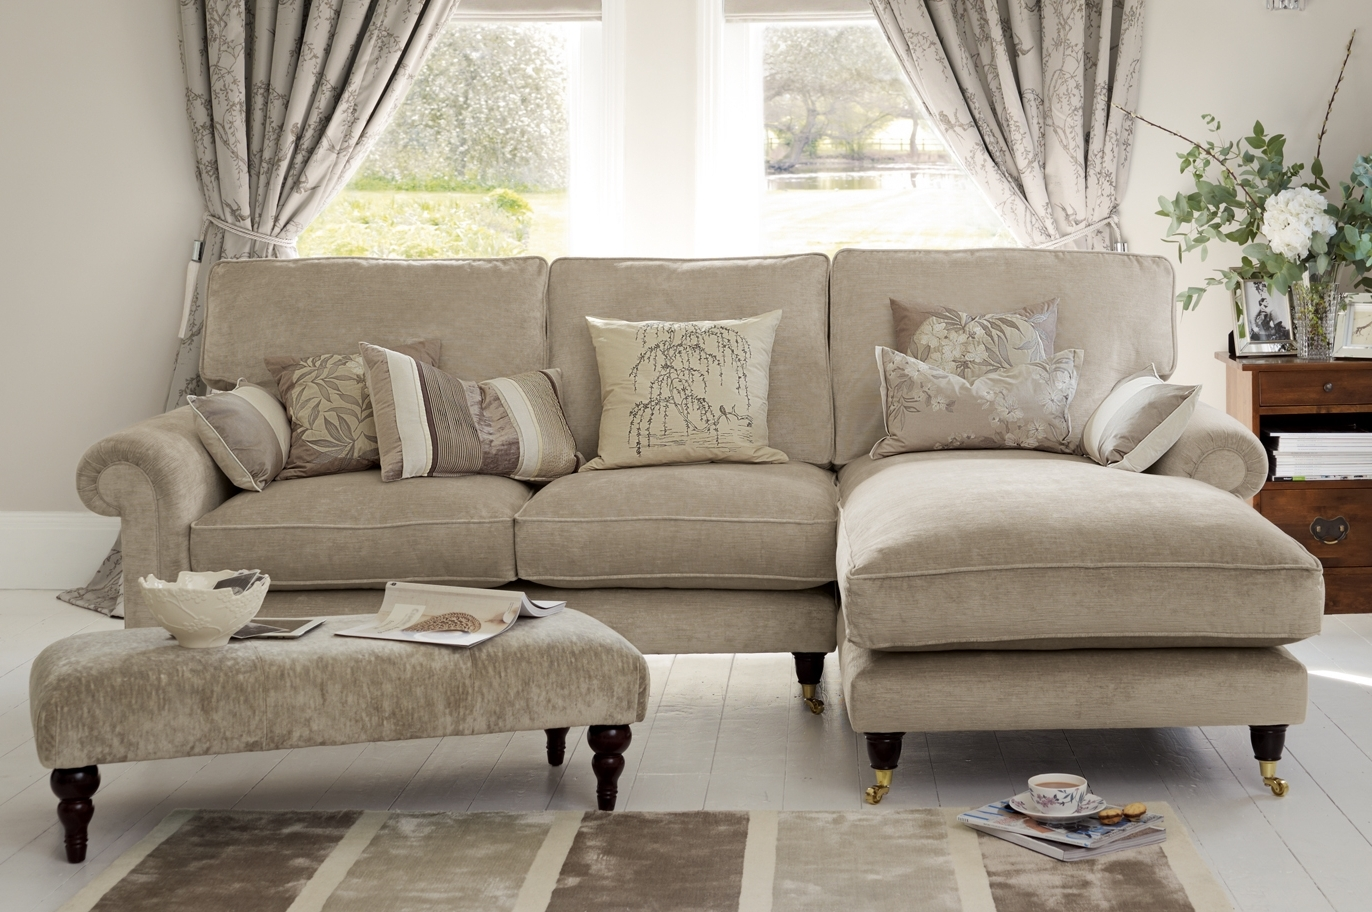 "Latest Kingston"" Sectional Sofa With Chaise In Sable Beige From Laura Within Ashley Chaise Lounges (View 12 of 15)"